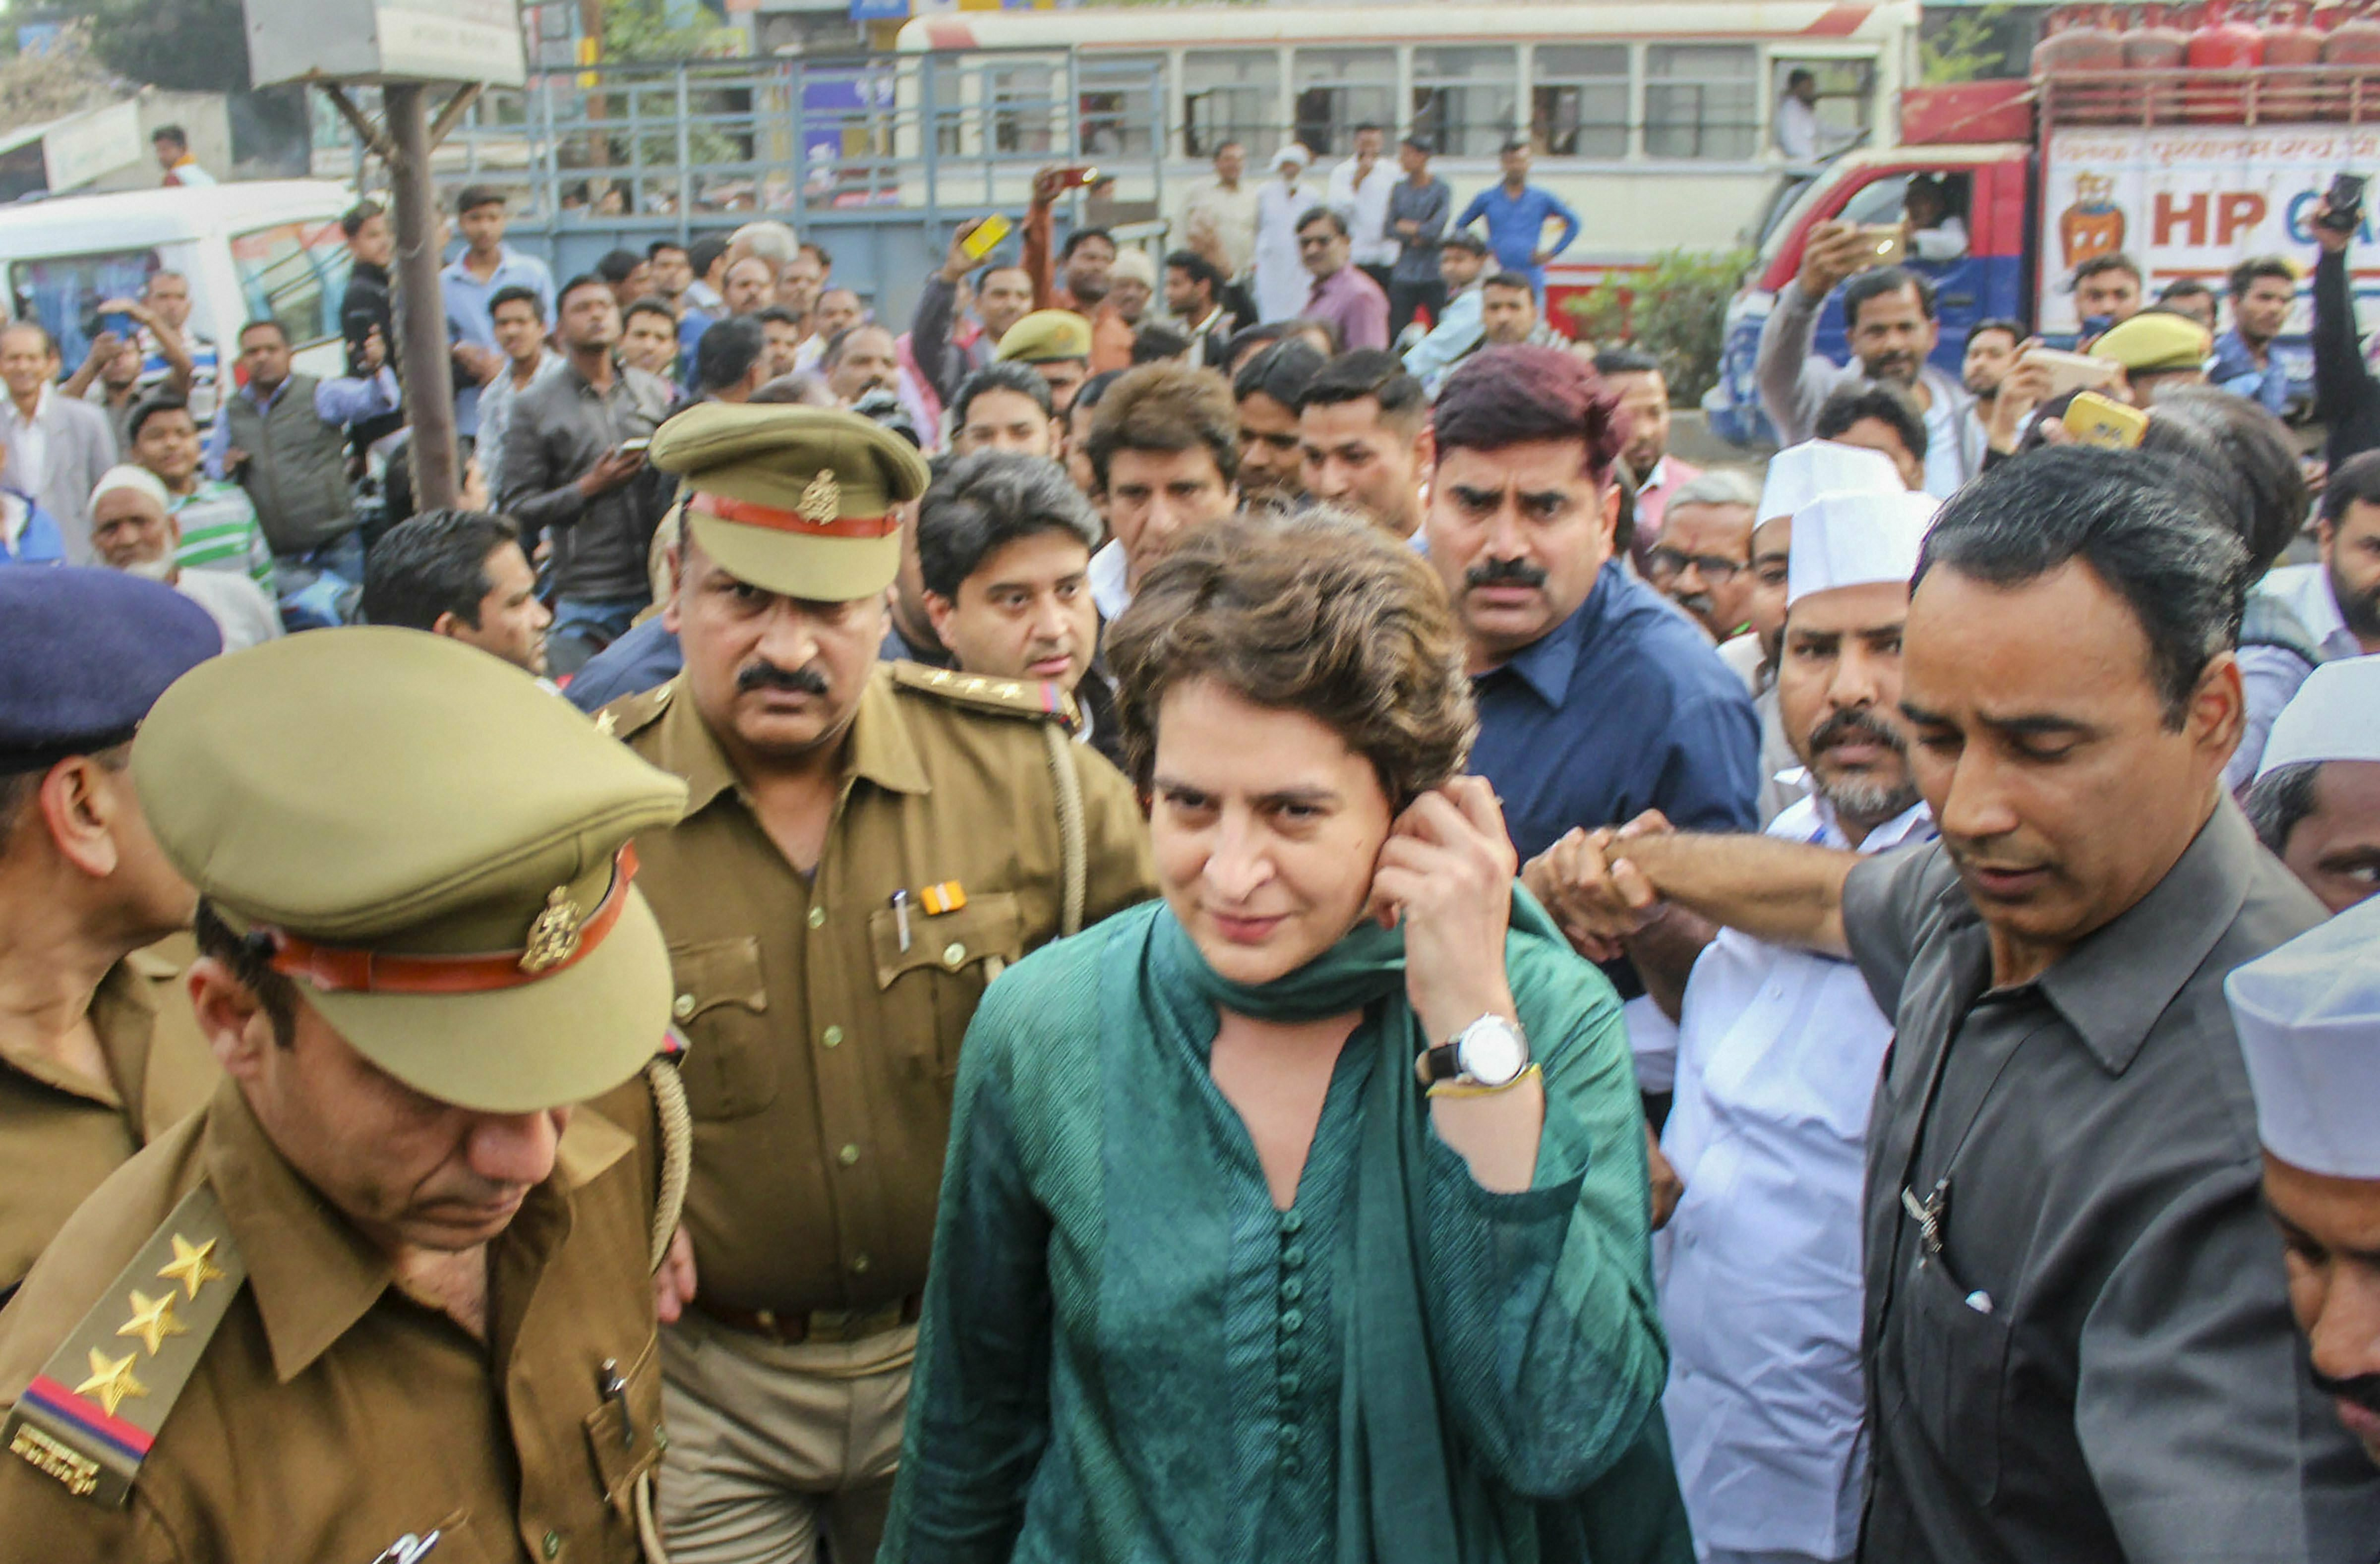 Congress General Secretary Priyanka Gandhi Vadra leaves after visiting Bhim Army chief Chandrashekhar Azad at a hospital, in Meerut - PTI